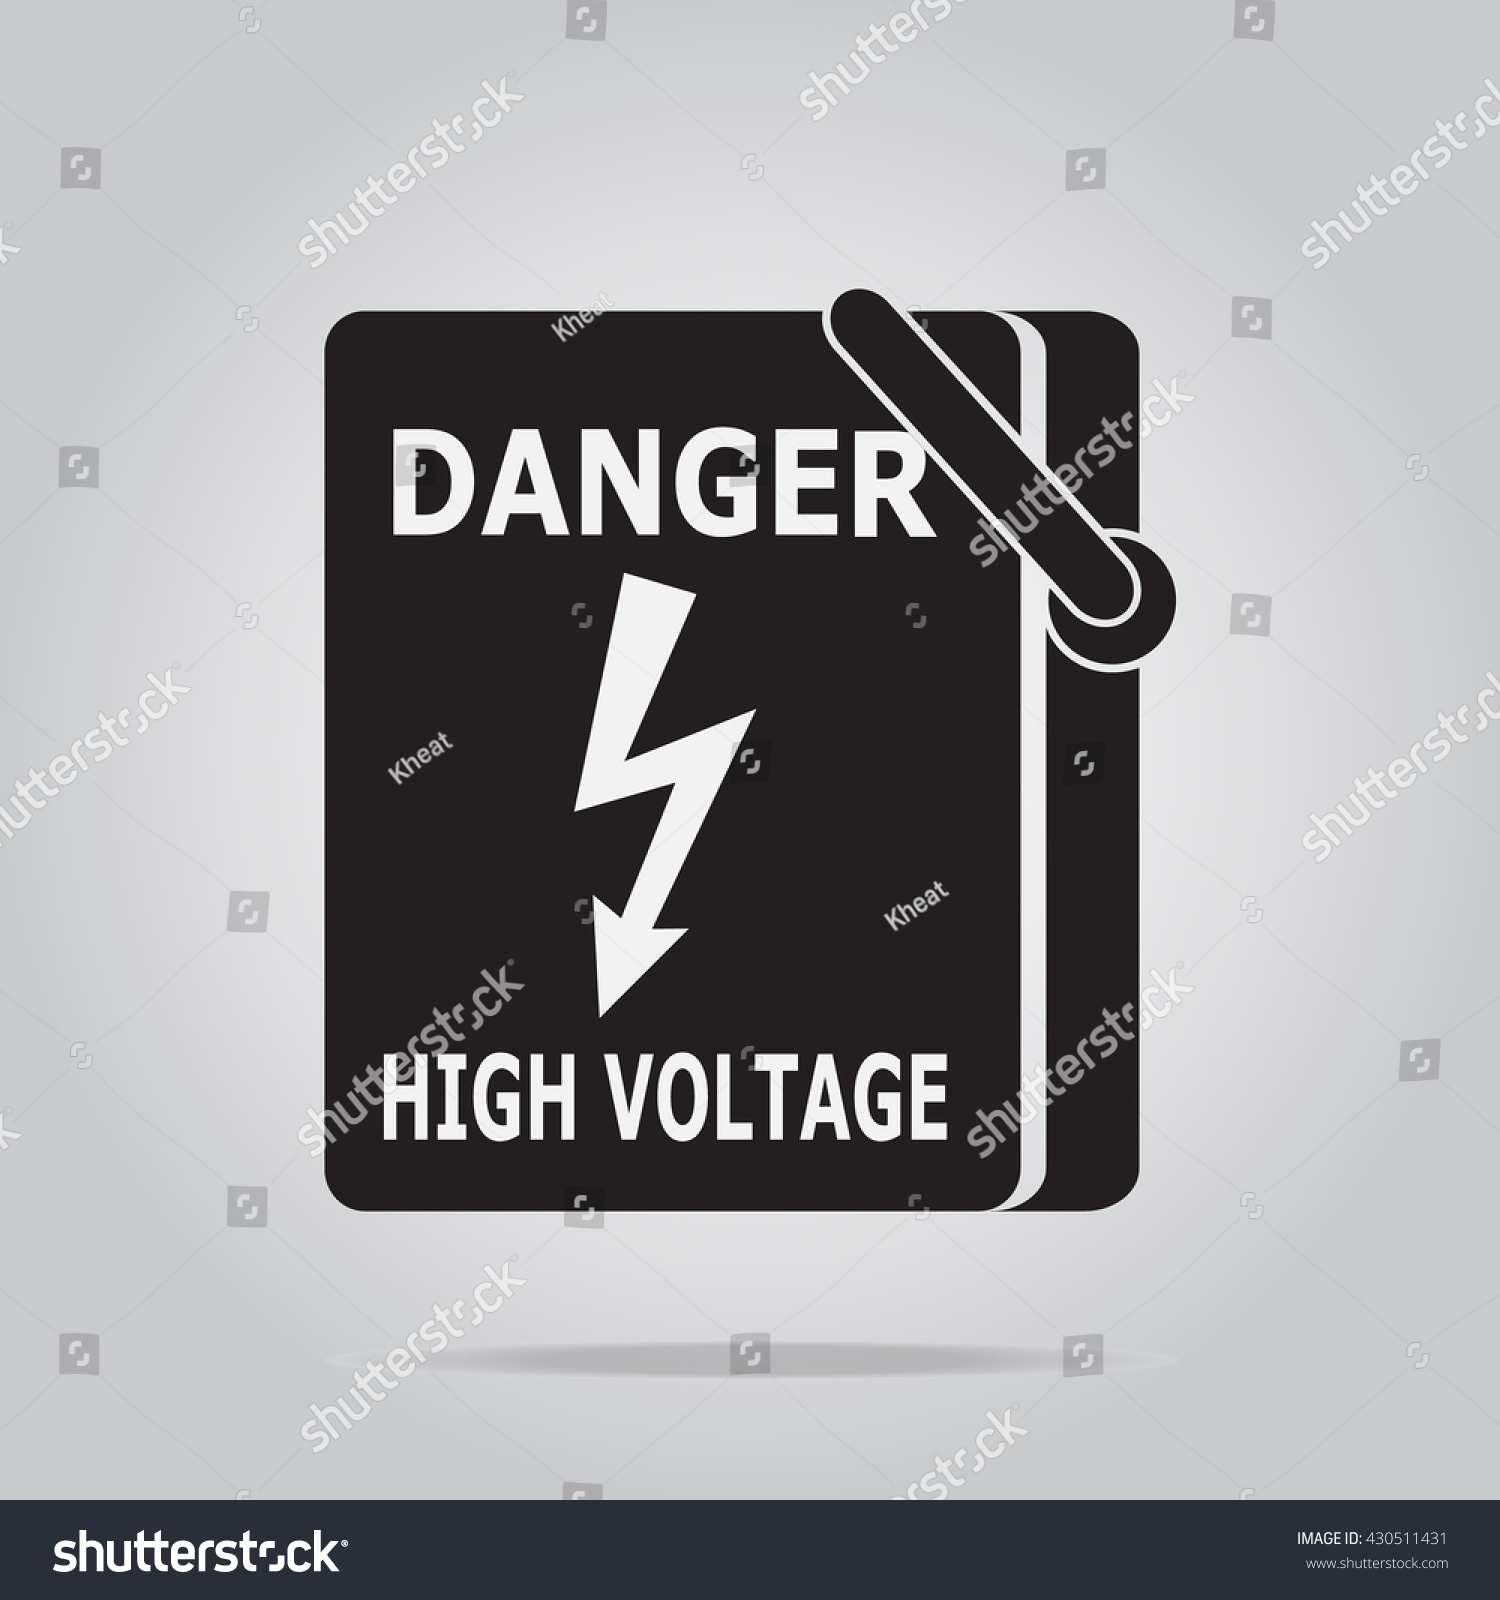 Electrical Switch Power Voltage Symbol Danger Stock Photo (Photo ...